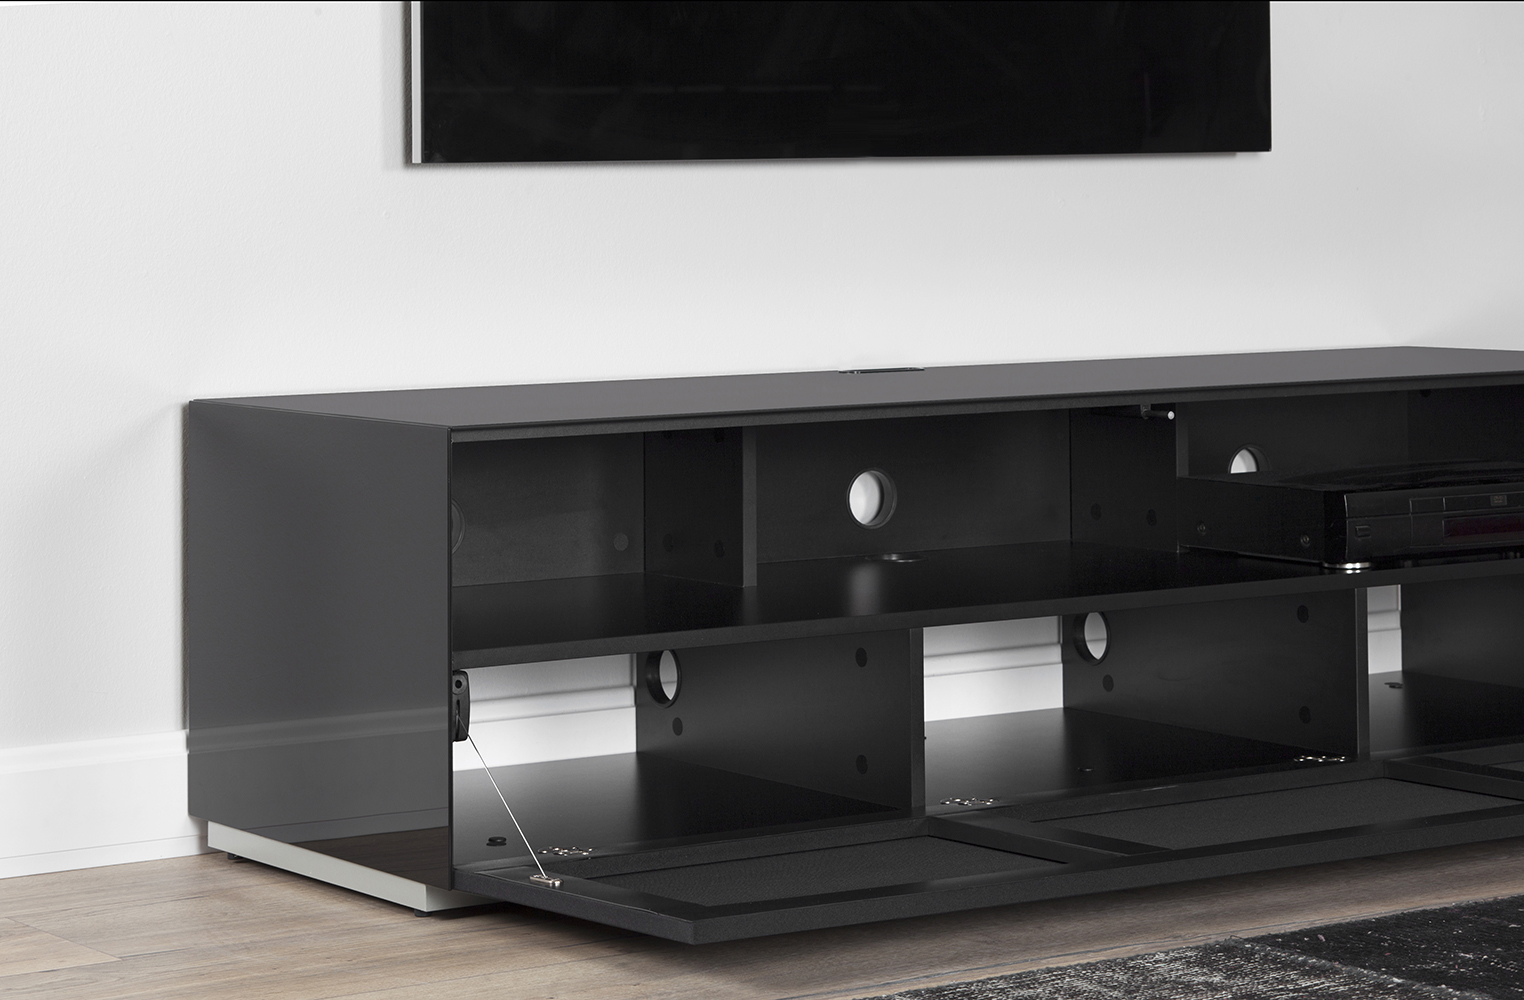 France Marketing Meubles Meuble Home Cinema Collection Meglio # Meuble Tv Homecinema